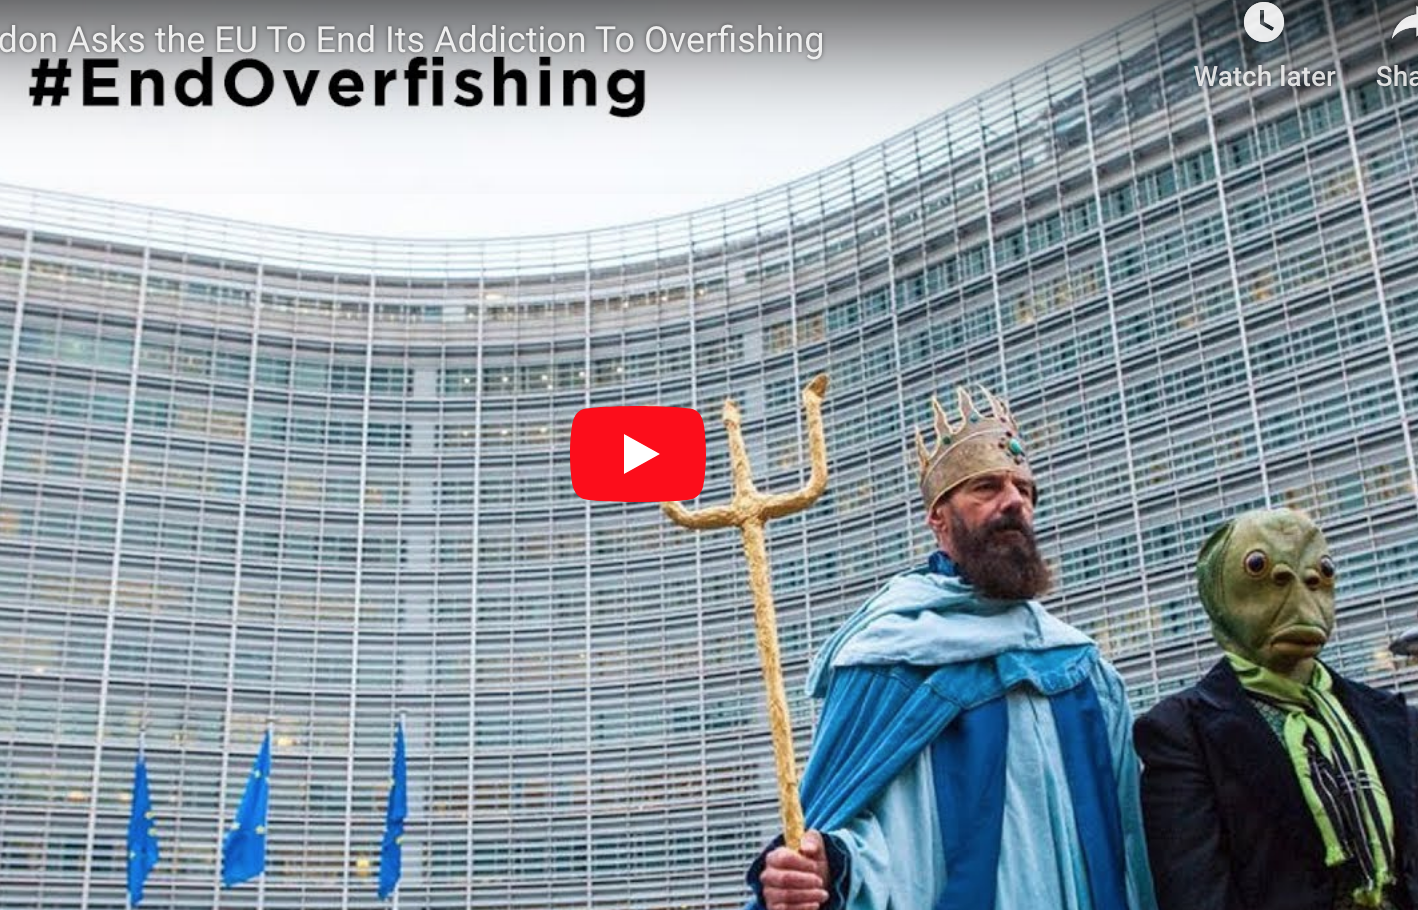 Euronews coverage of Our Fish event in Brussels, during Agrifish, December 17, 2018.